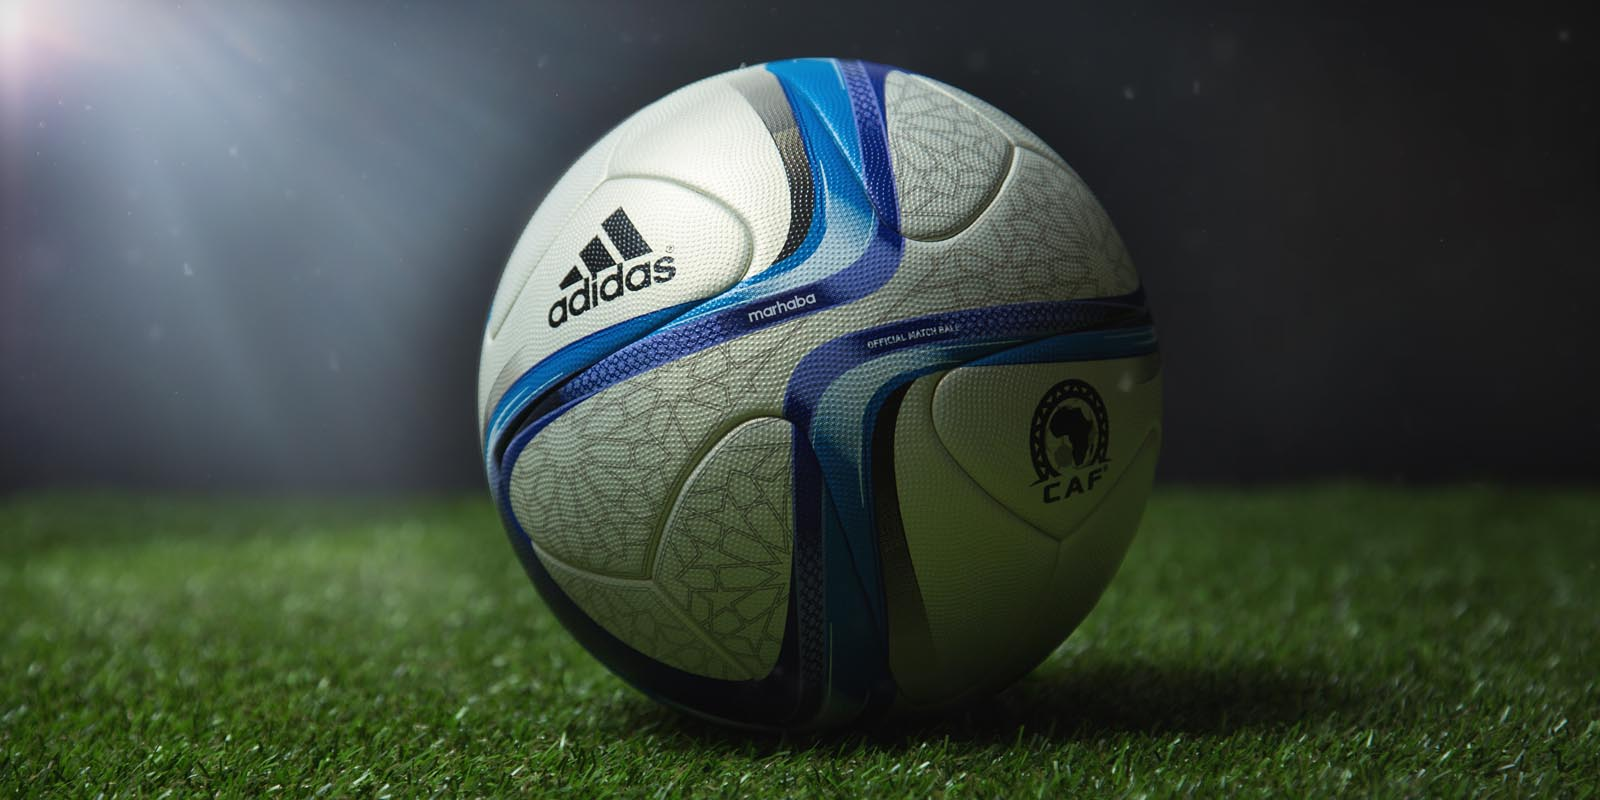 Adidas-2015-Africa-Cup-of-Nations-Ball%2